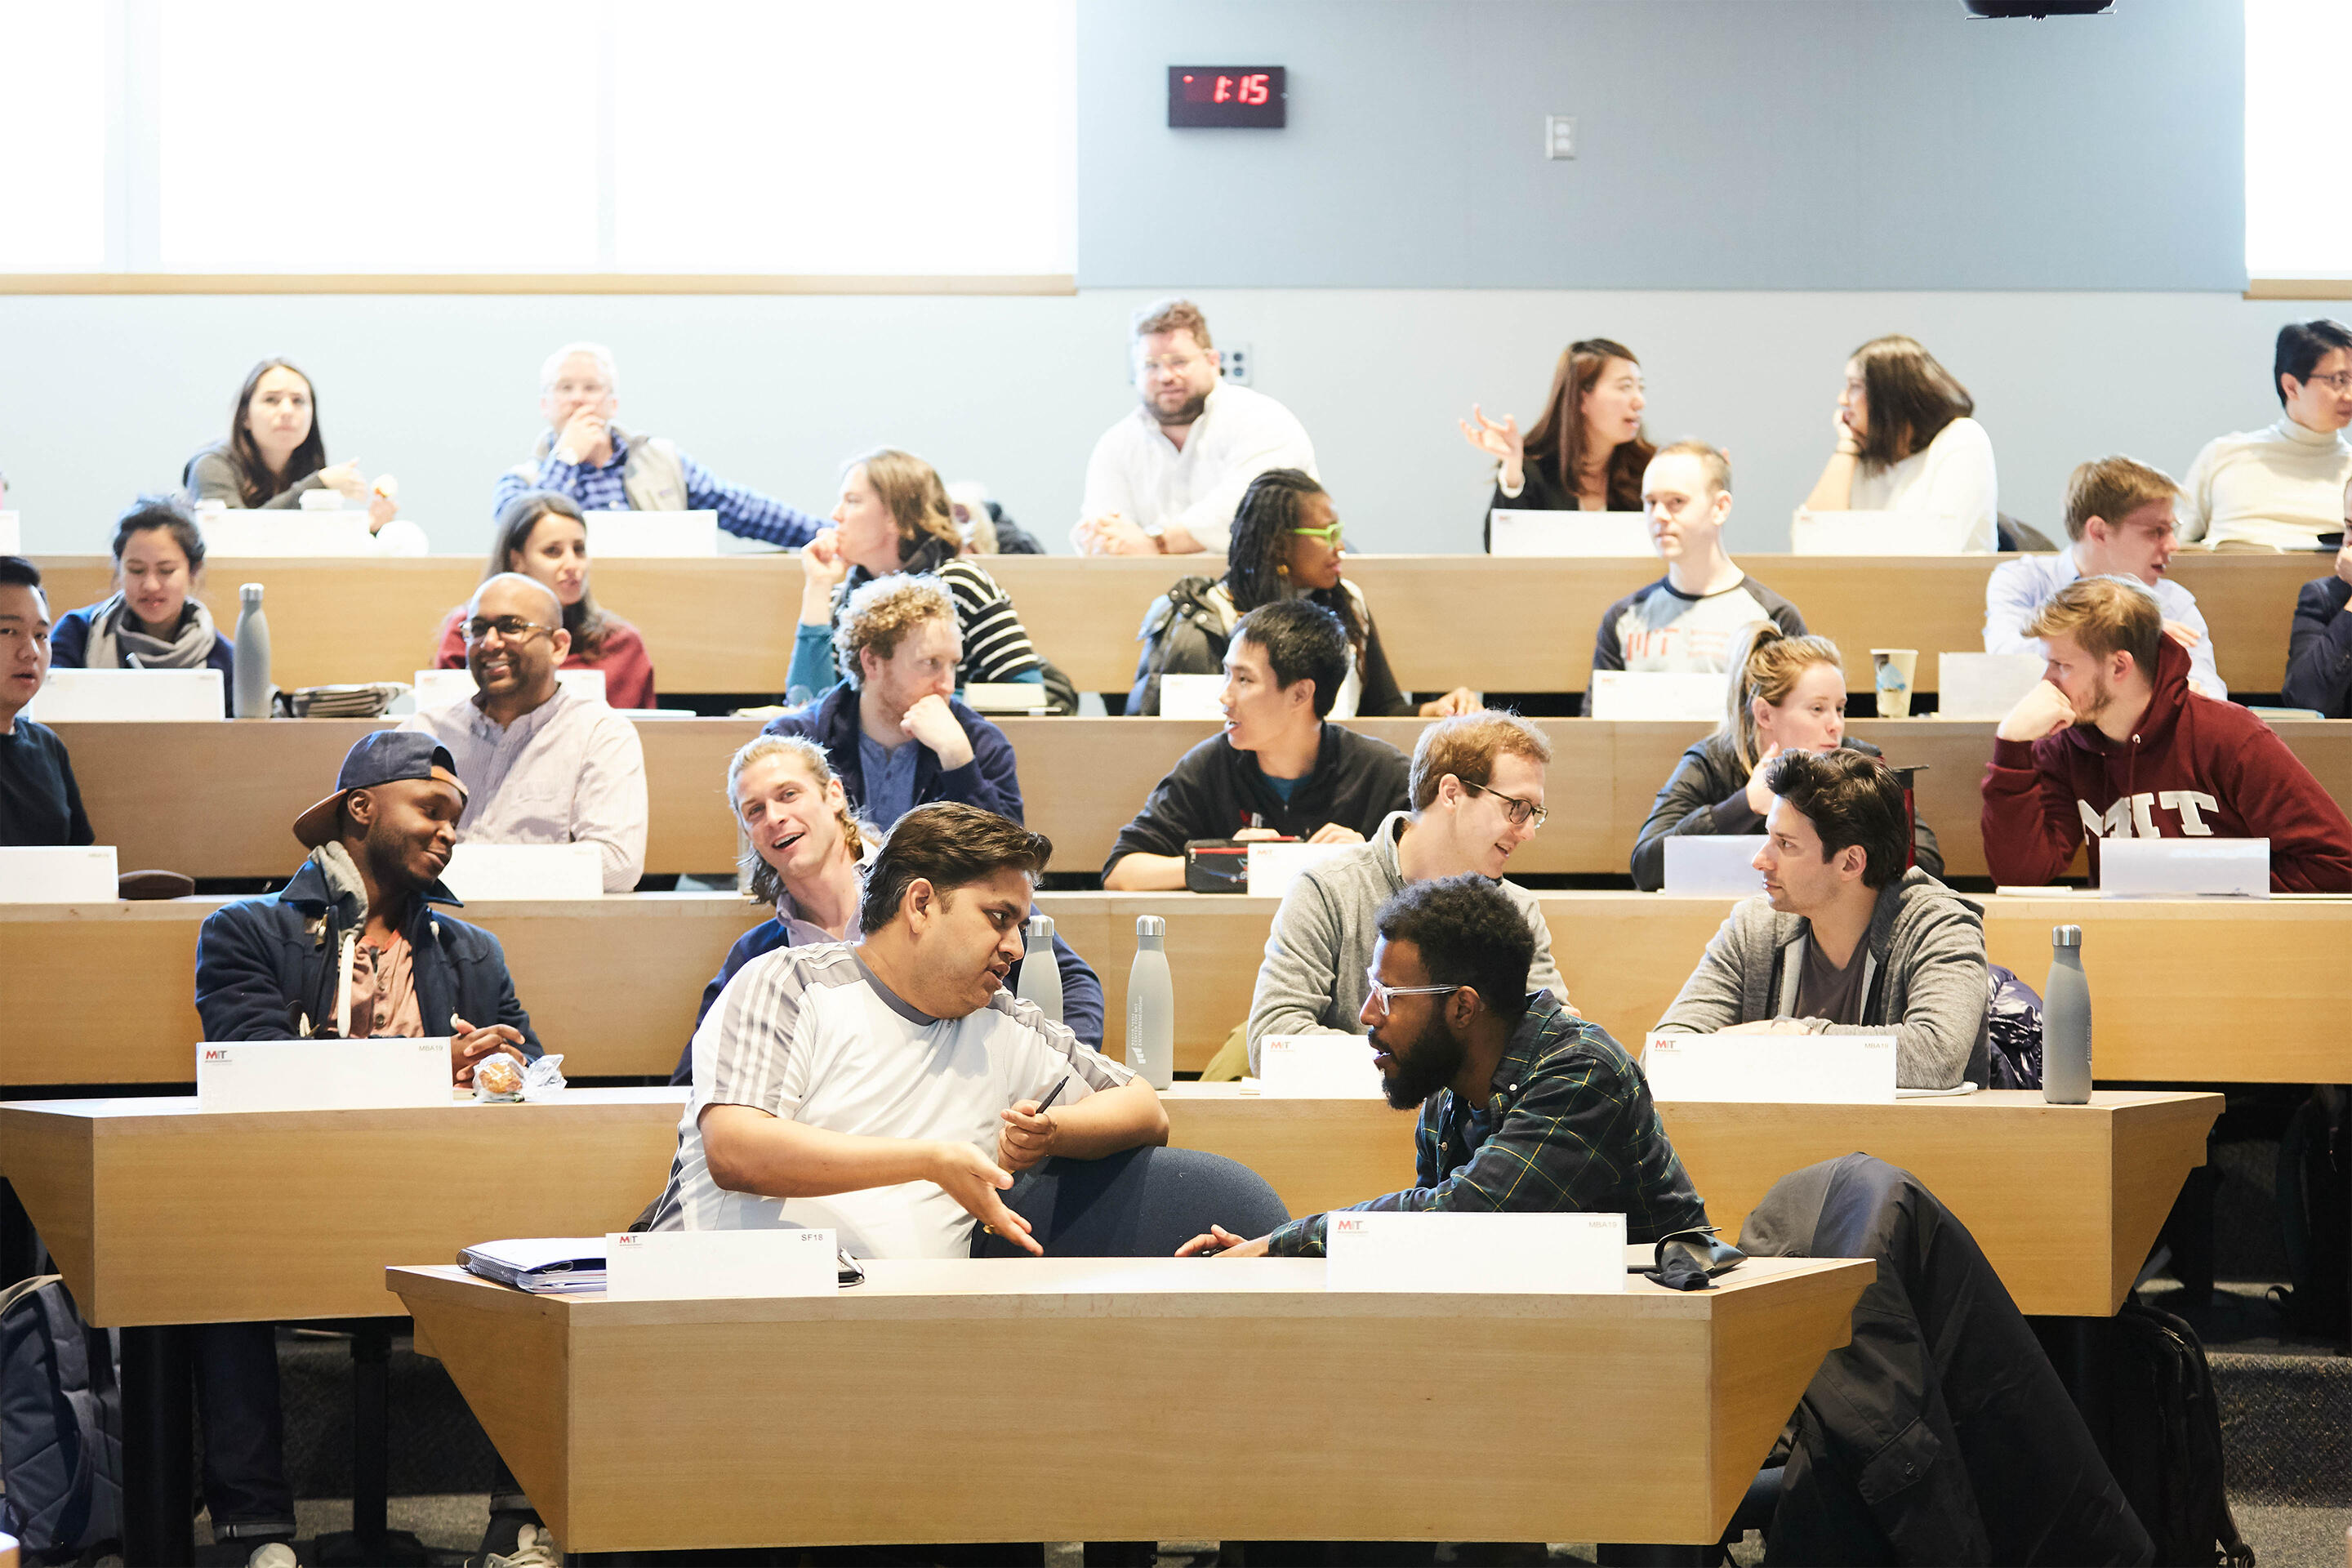 MIT Sloan students in tiered classroom